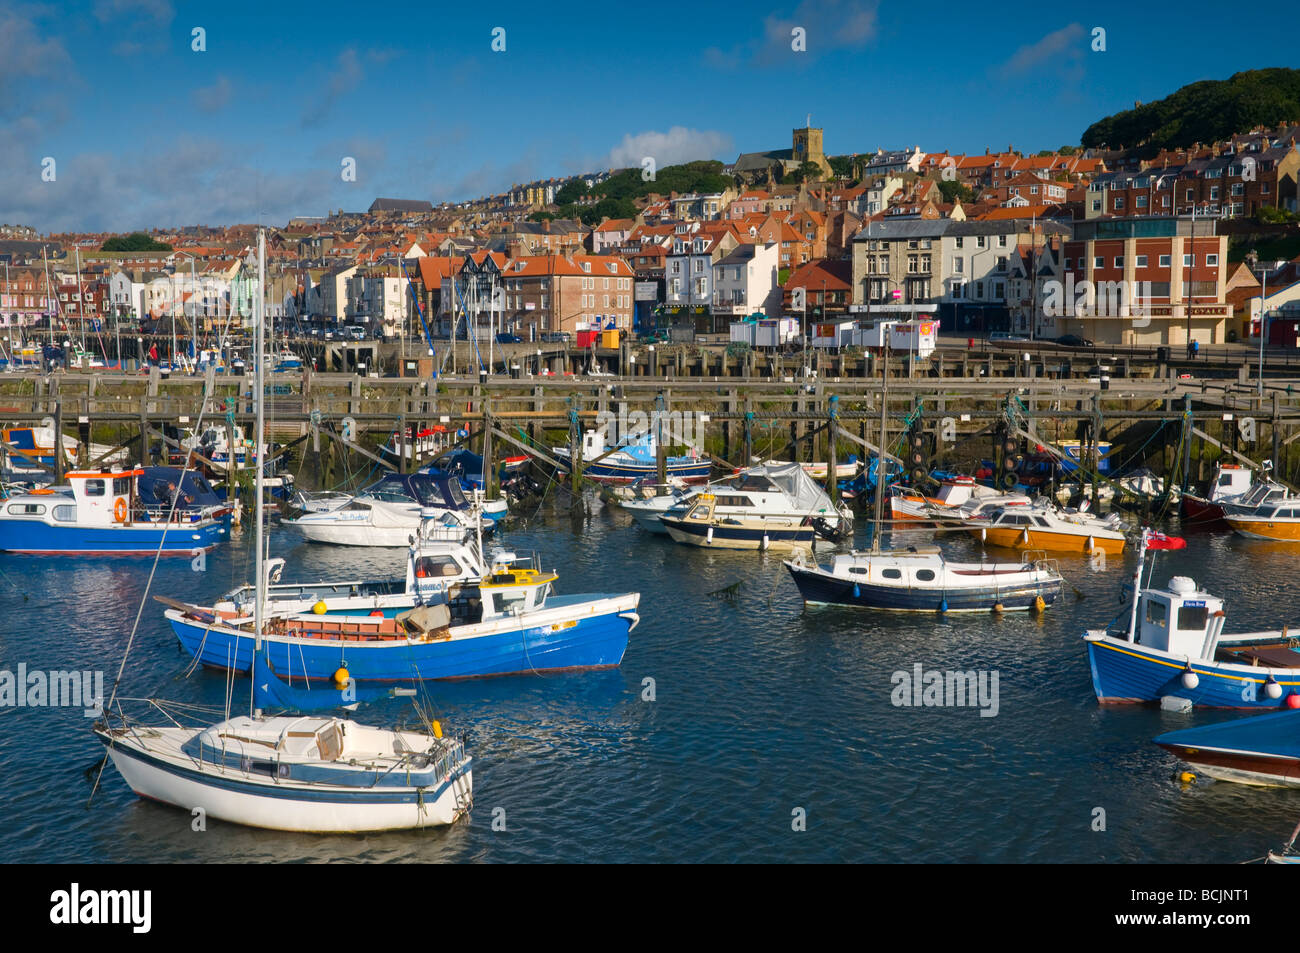 UK, North Yorkshire, Scarborough - Stock Image